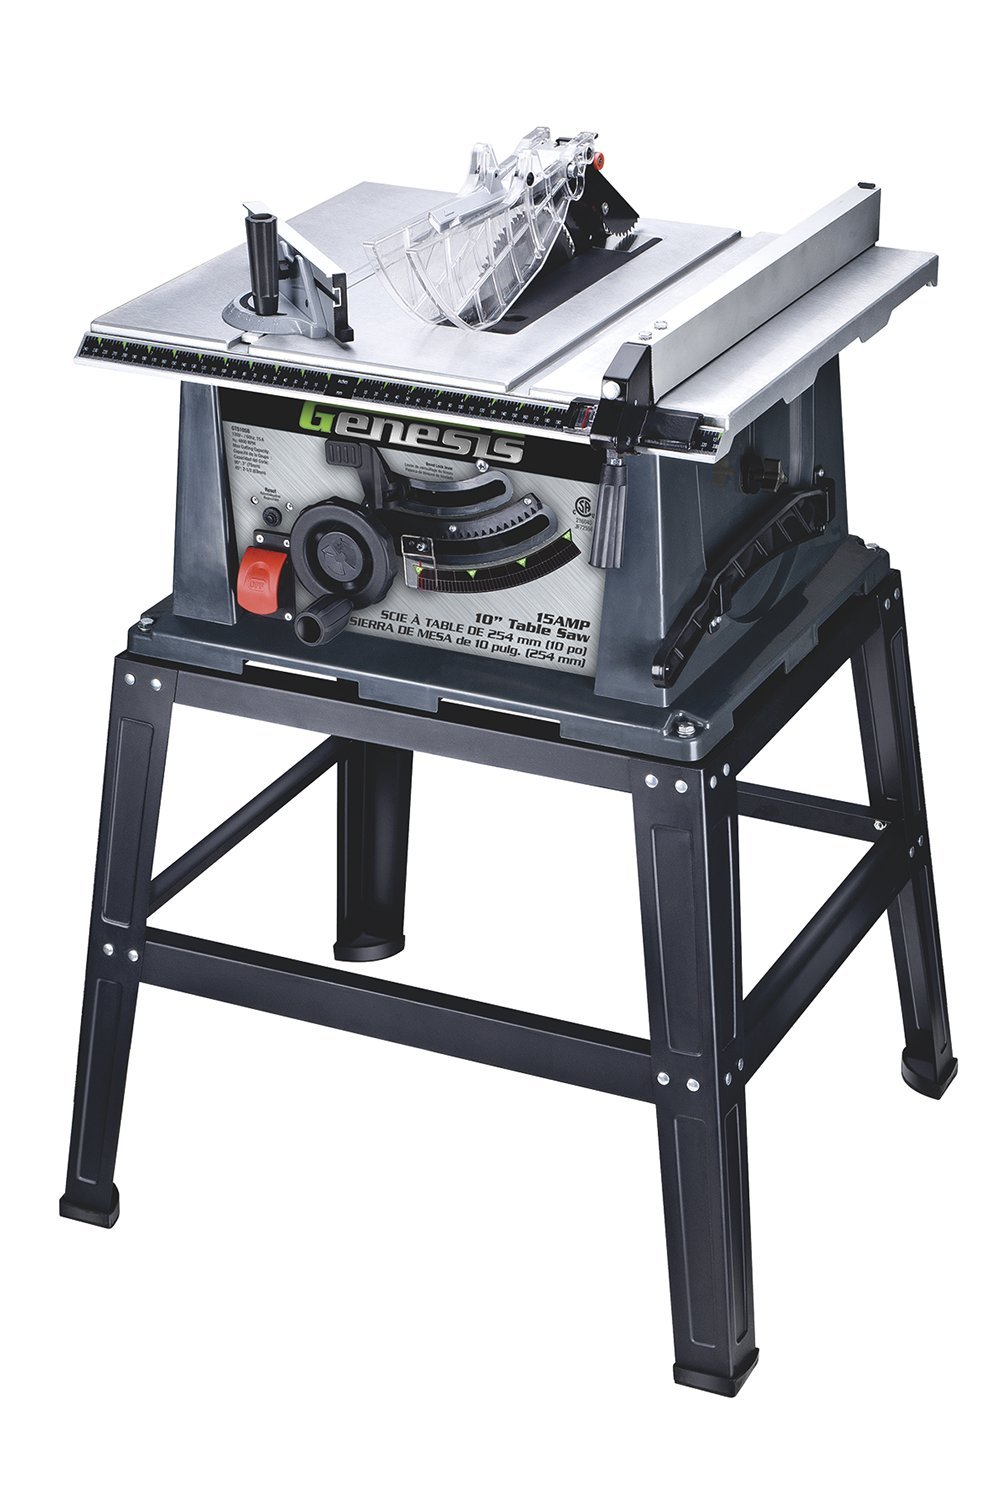 Genesis Gts10sb 10 Inch 15 Amp Table Saw With Stand Ebay